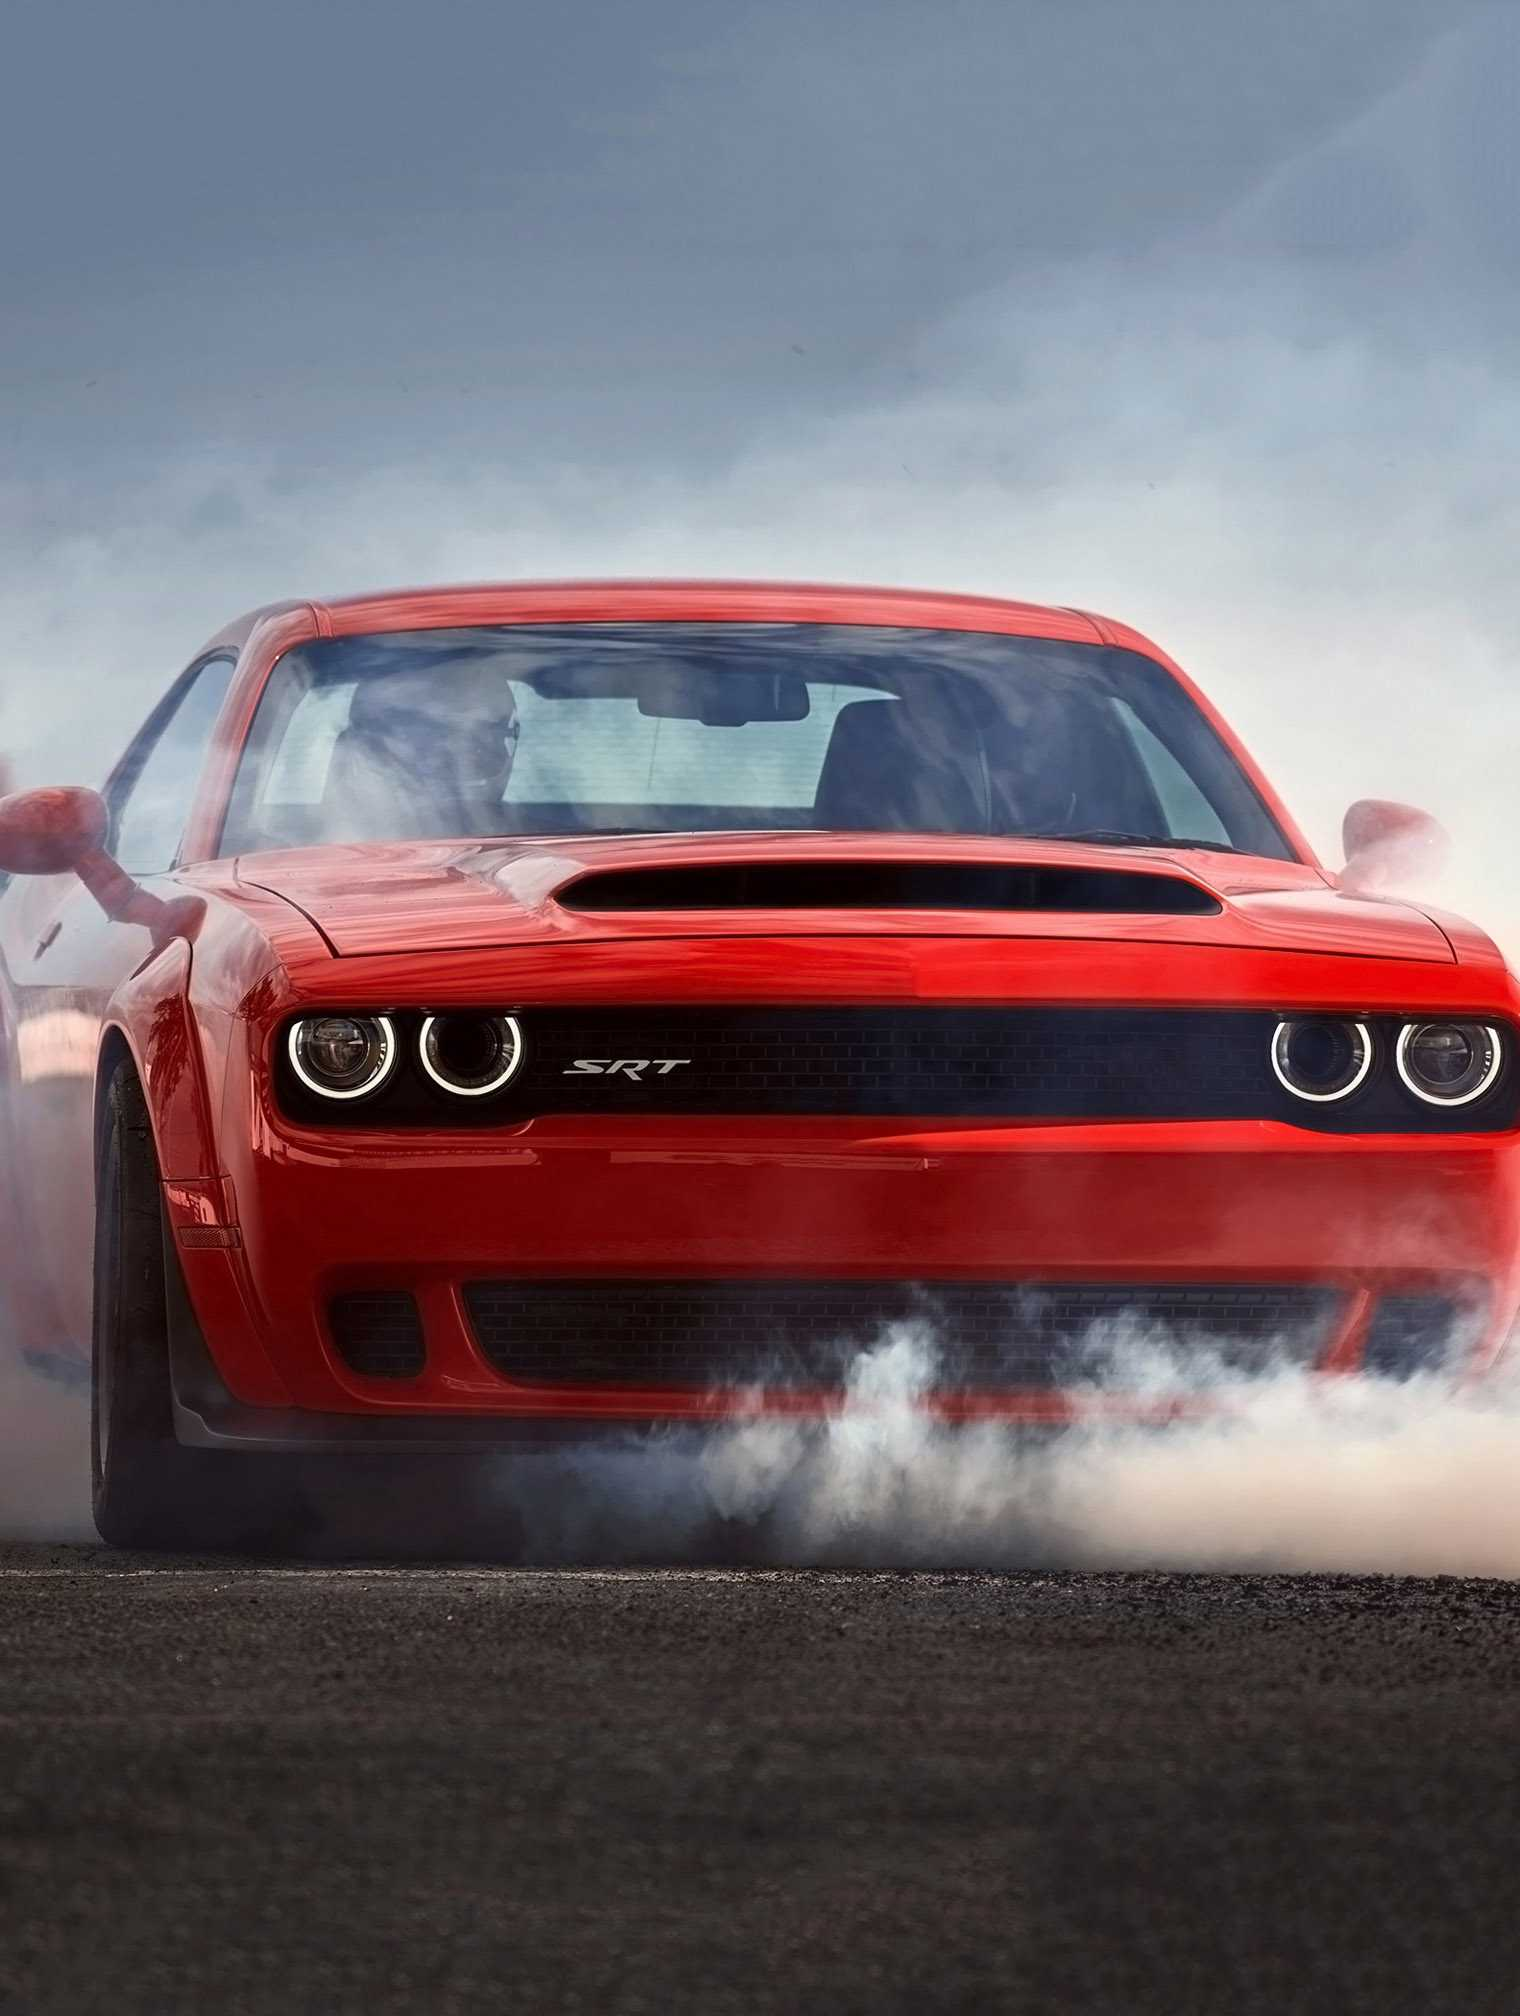 Dodge Challenger Wallpaper Kolpaper Awesome Free Hd Wallpapers